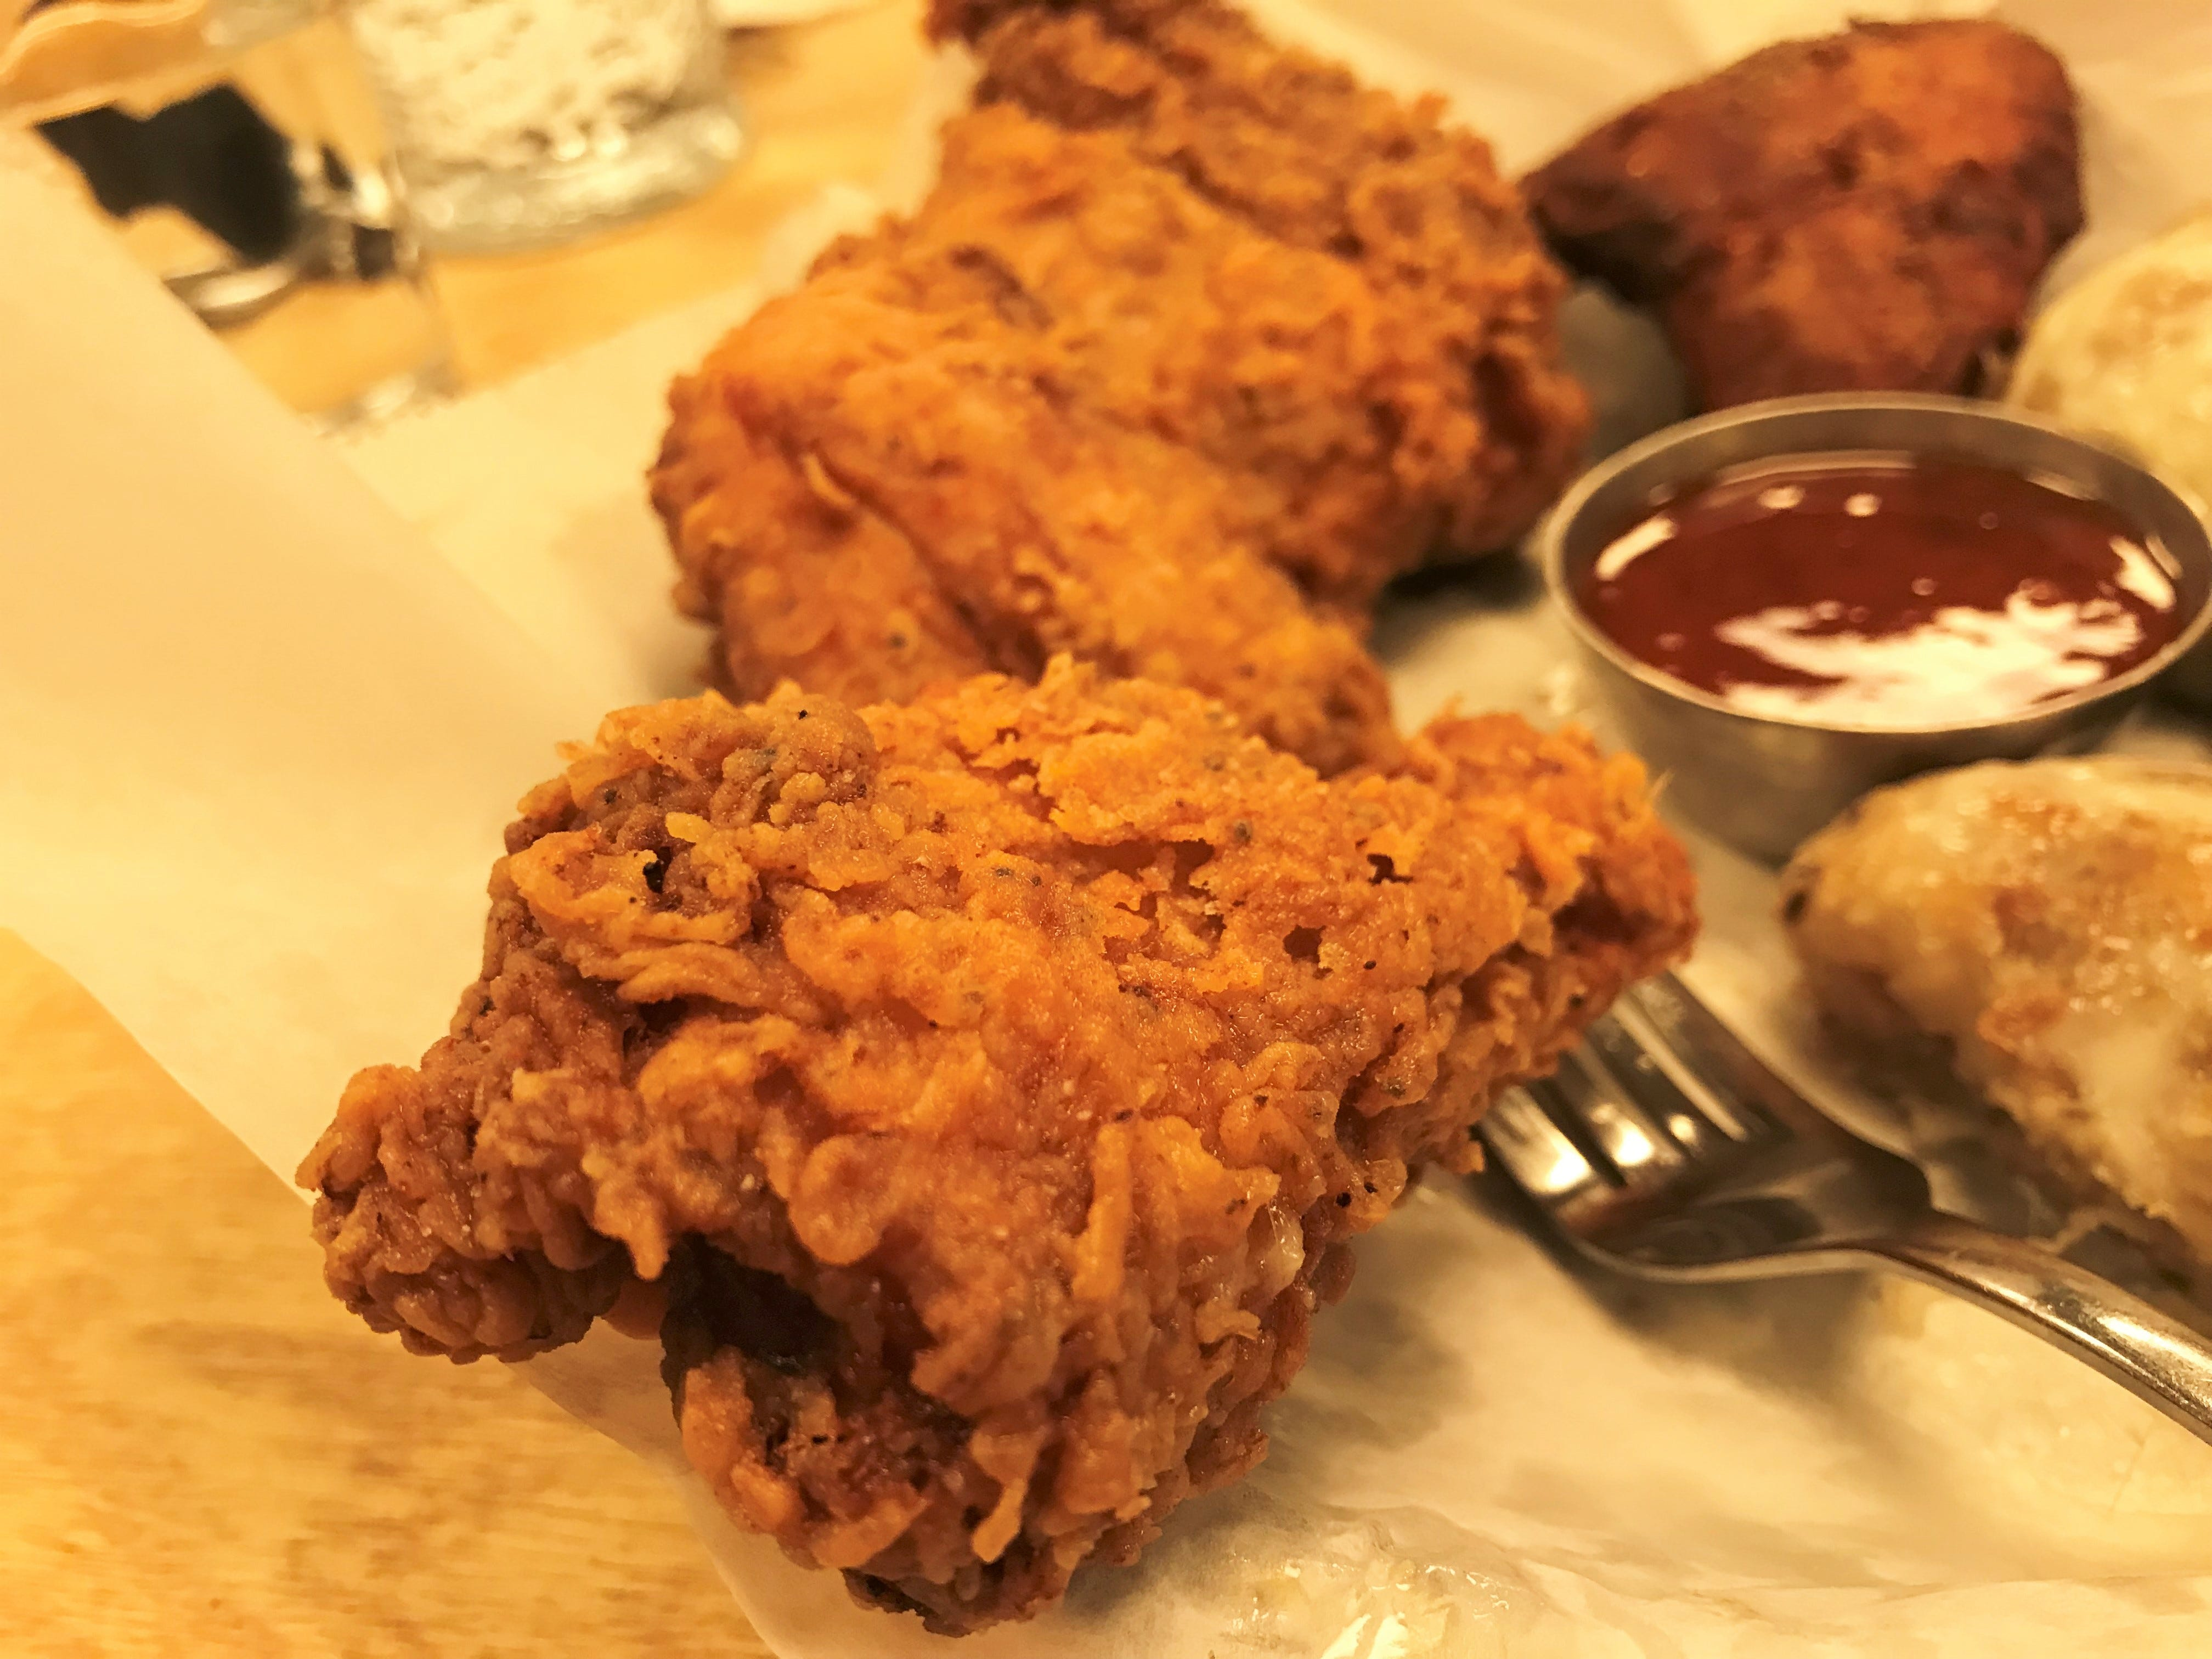 Shani S Secret Chicken Is Fried Chicken Worth Finding In Indianapolis